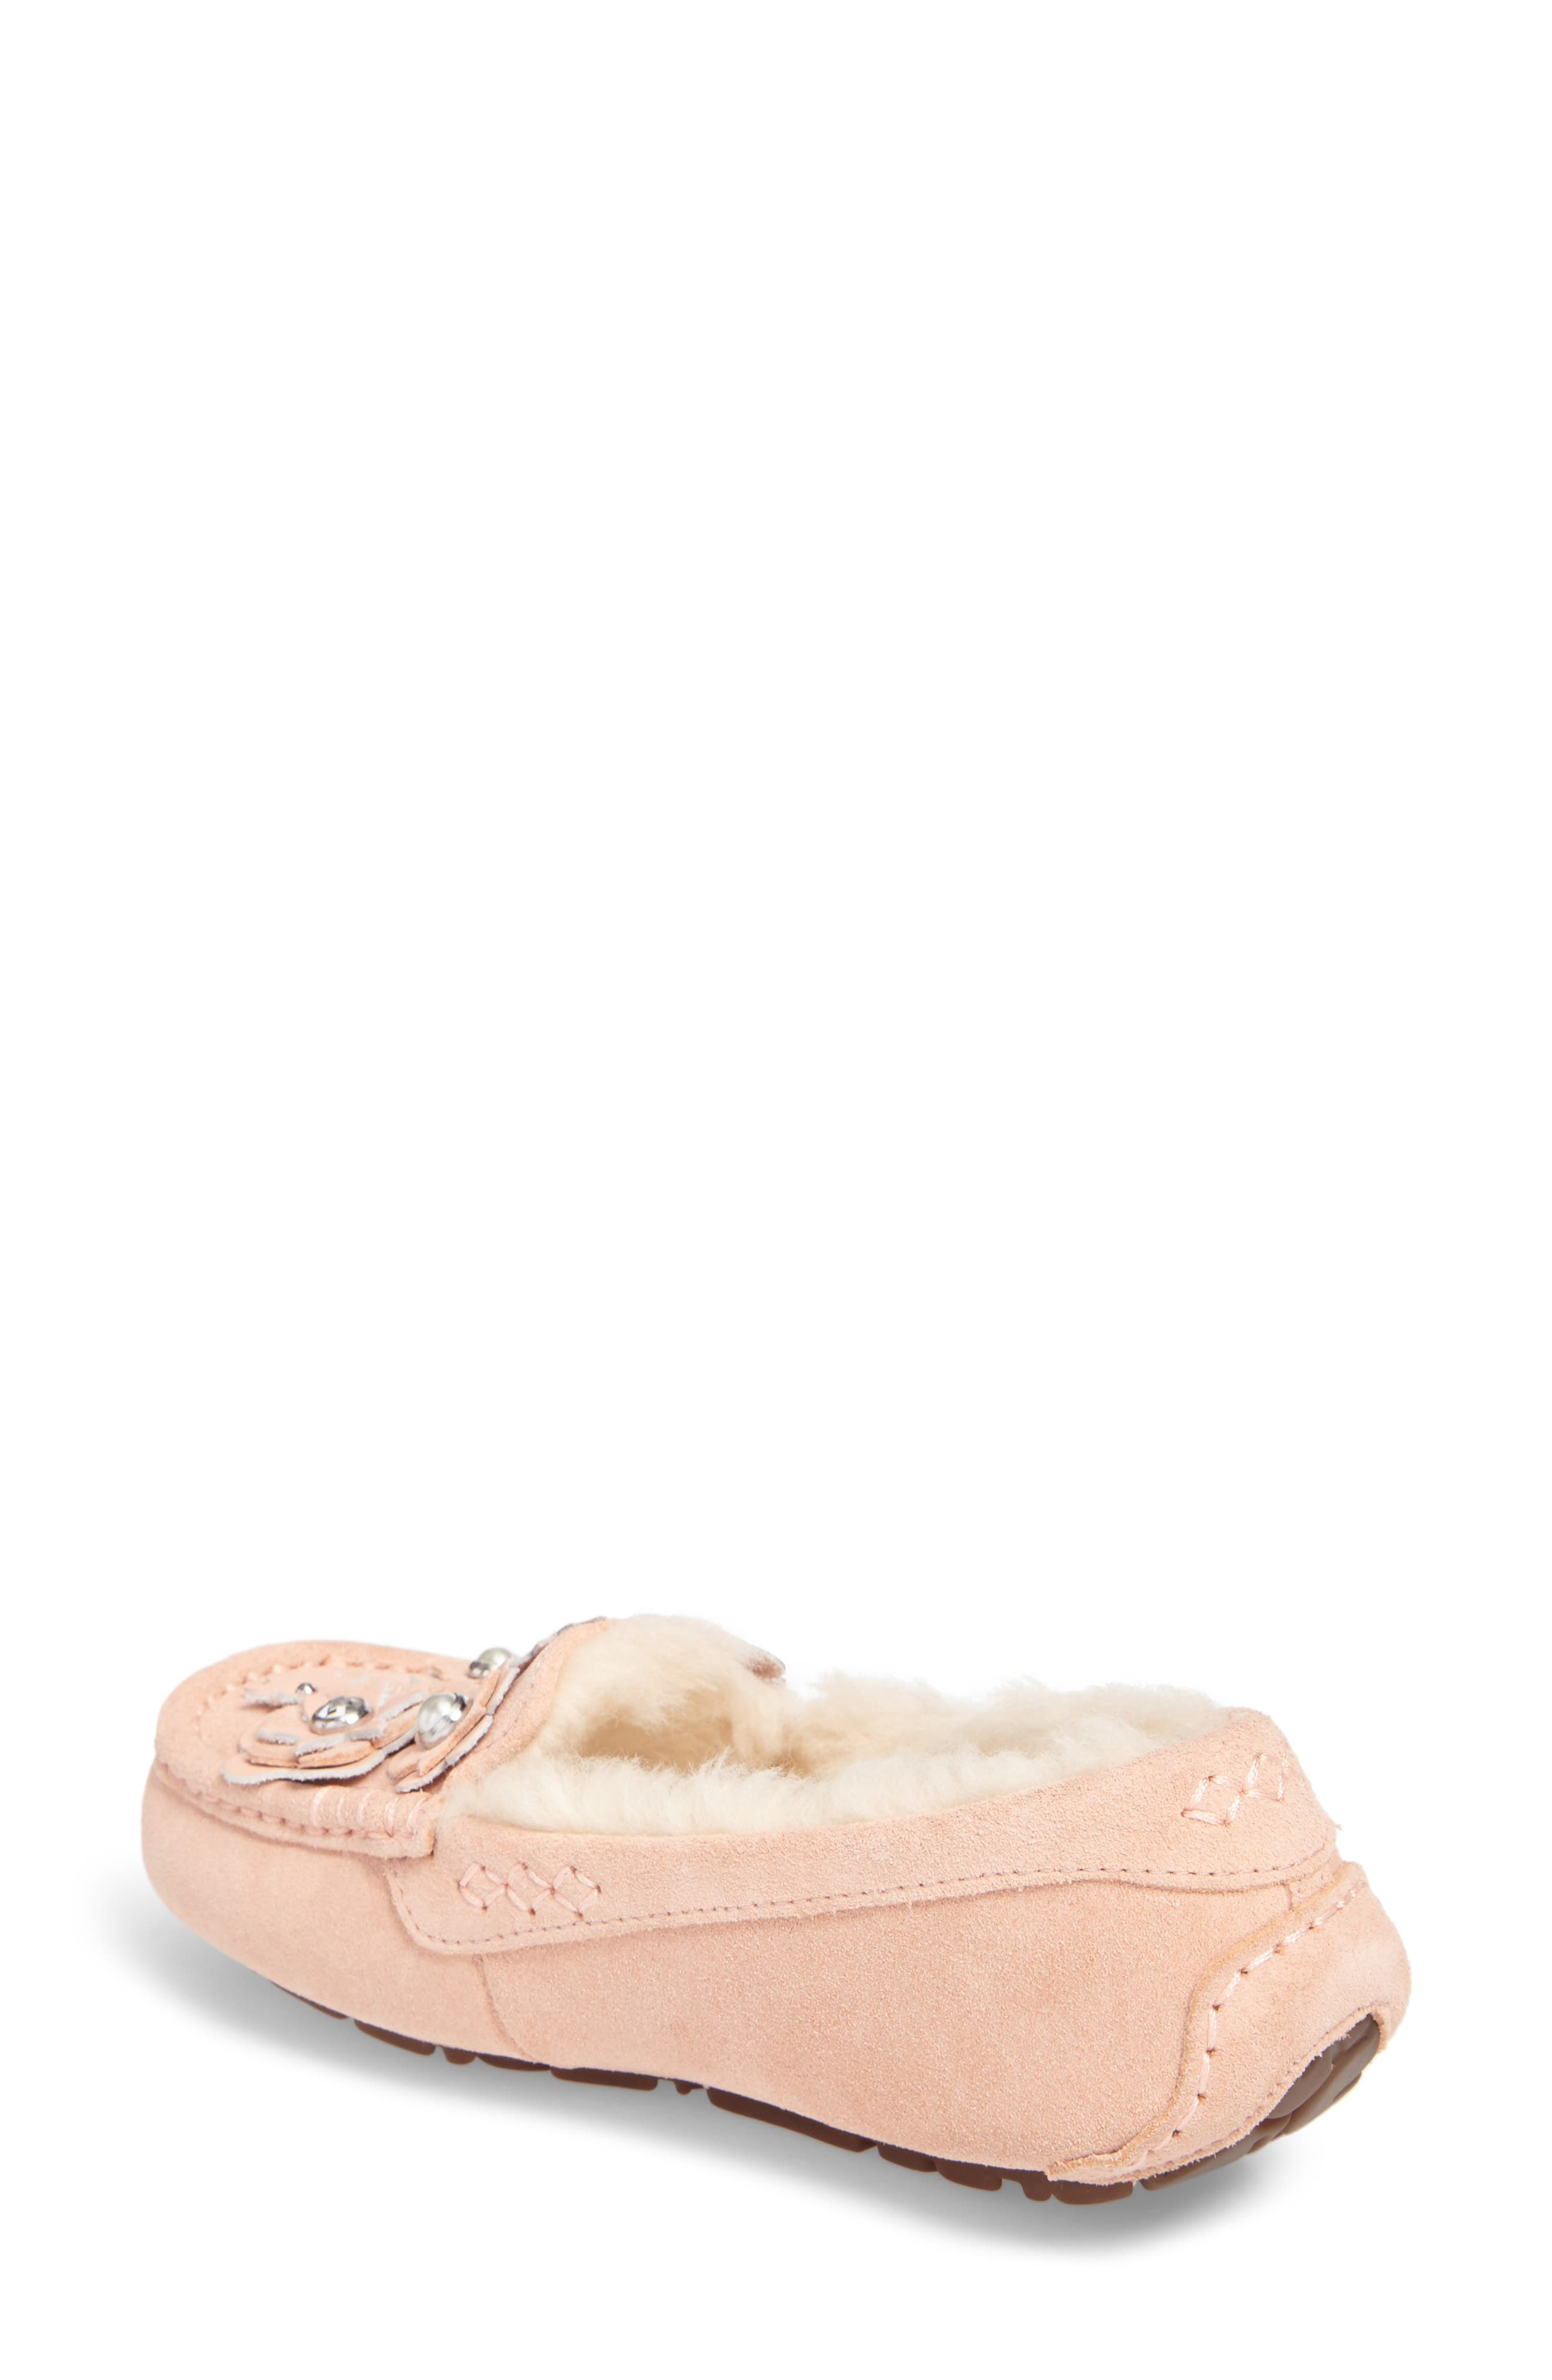 Alternate Image 2  - UGG® Ansley Petal Water Resistant Slipper (Women)